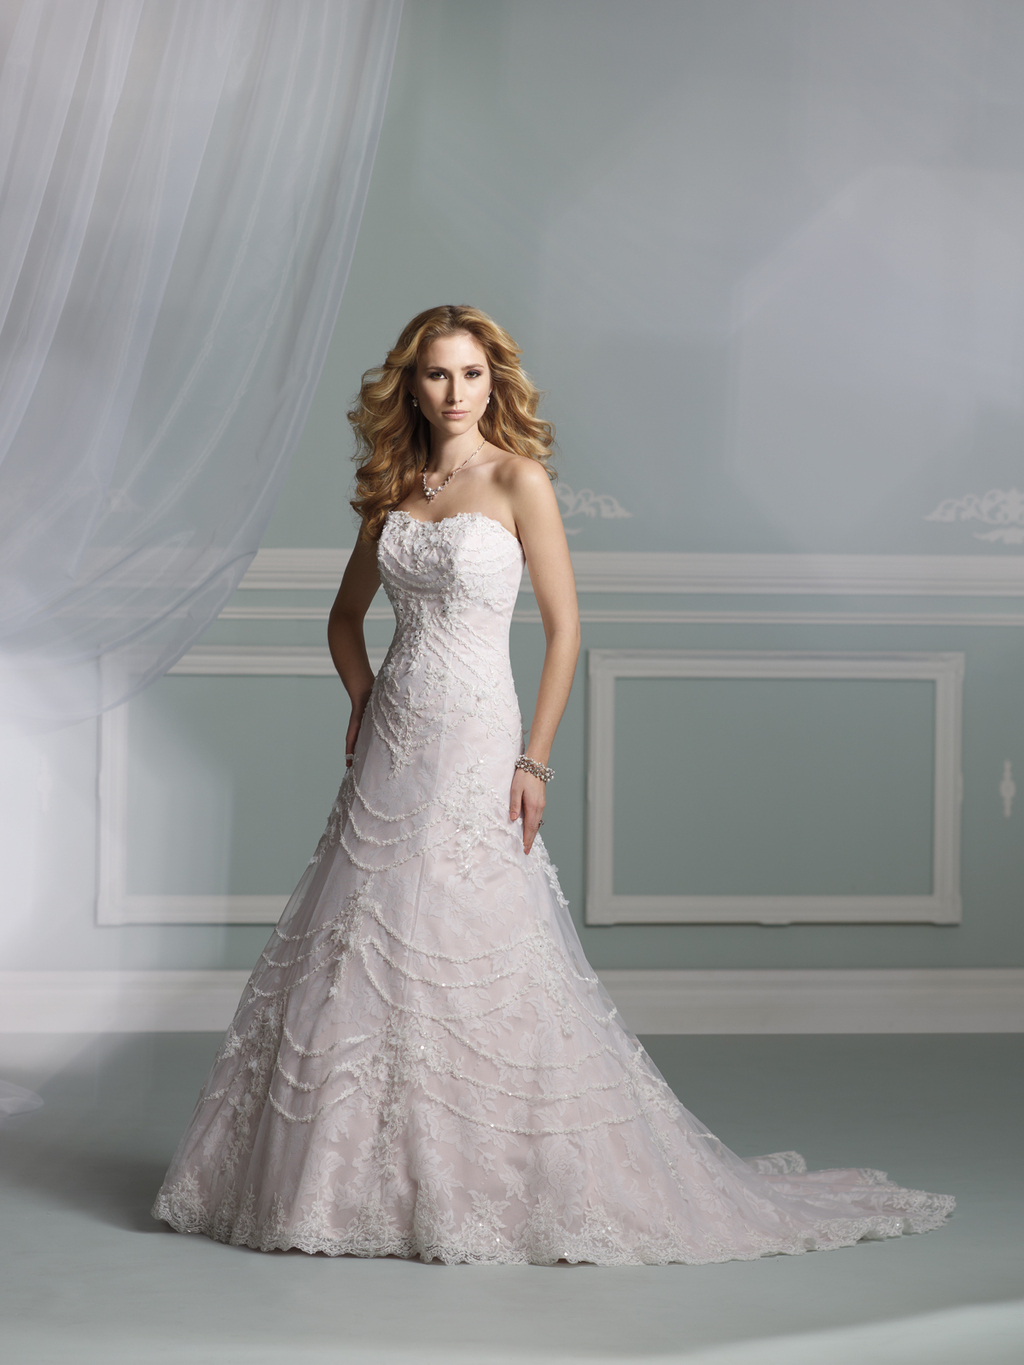 Wedding-dress-james-clifford-collection-mon-cheri-fall-2012-bridal-gown-j21270.full